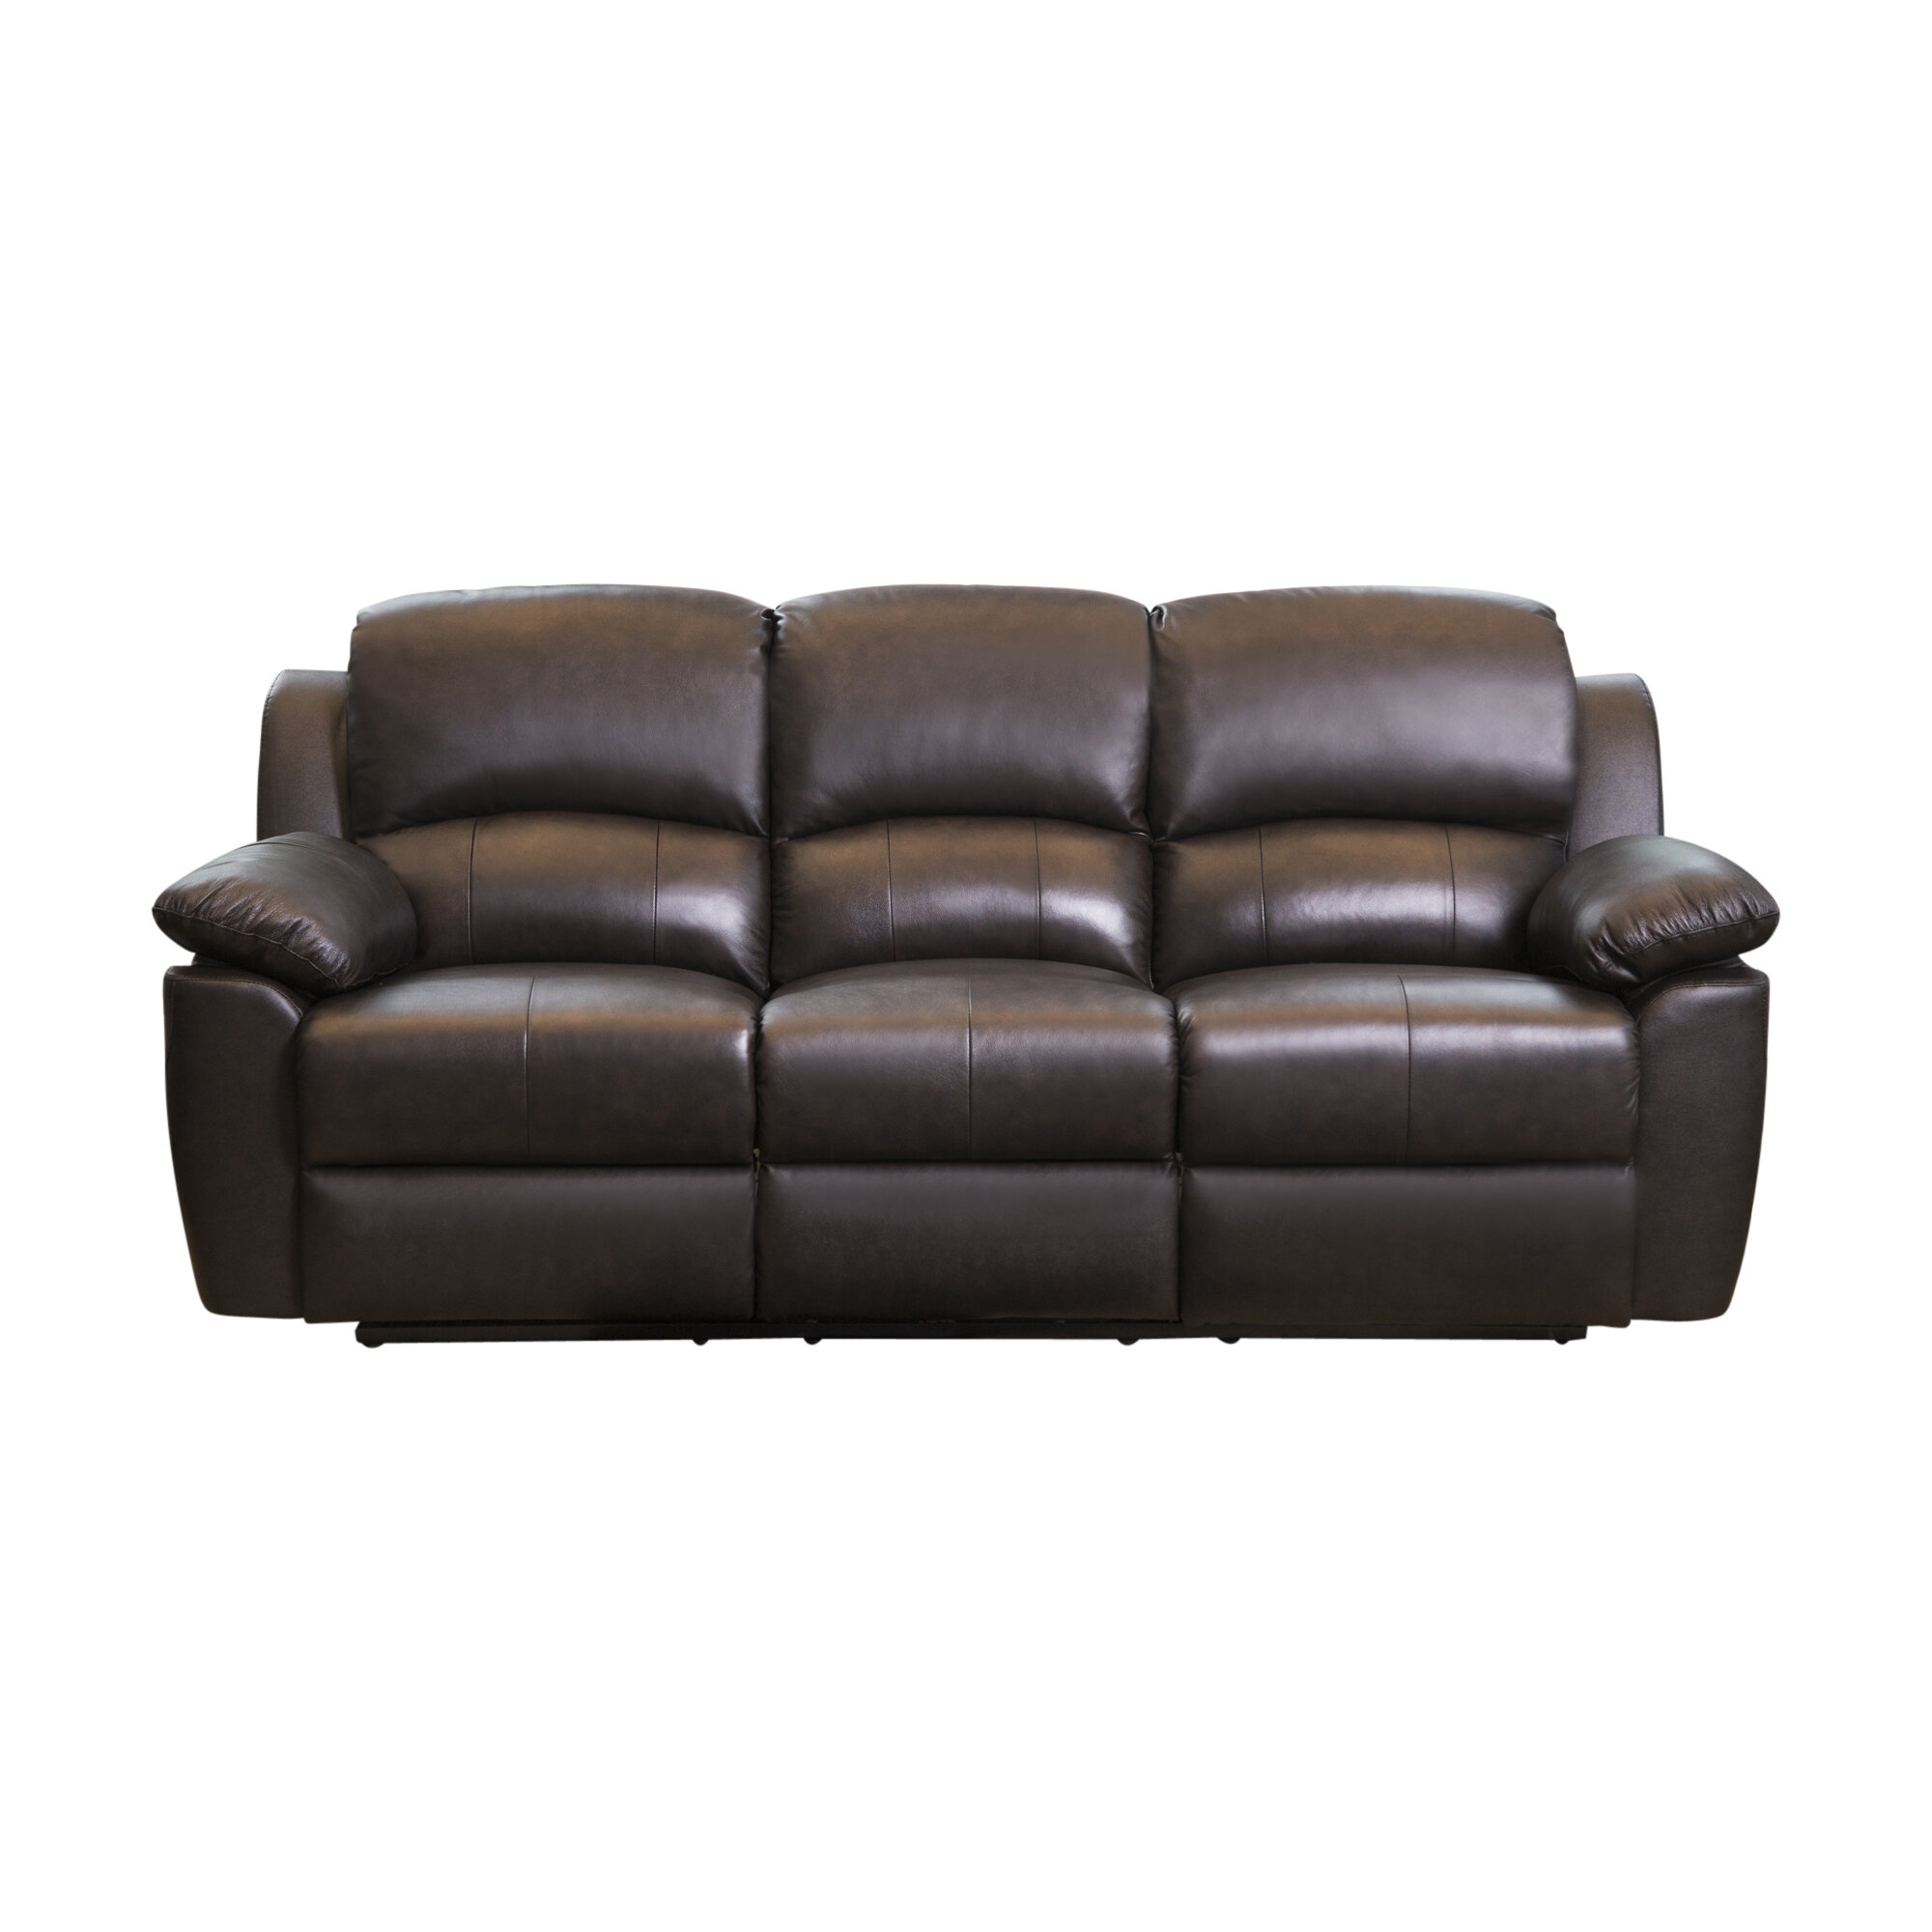 Darby Home Co Blackmoor Leather Reclining Sofa & Reviews | Wayfair